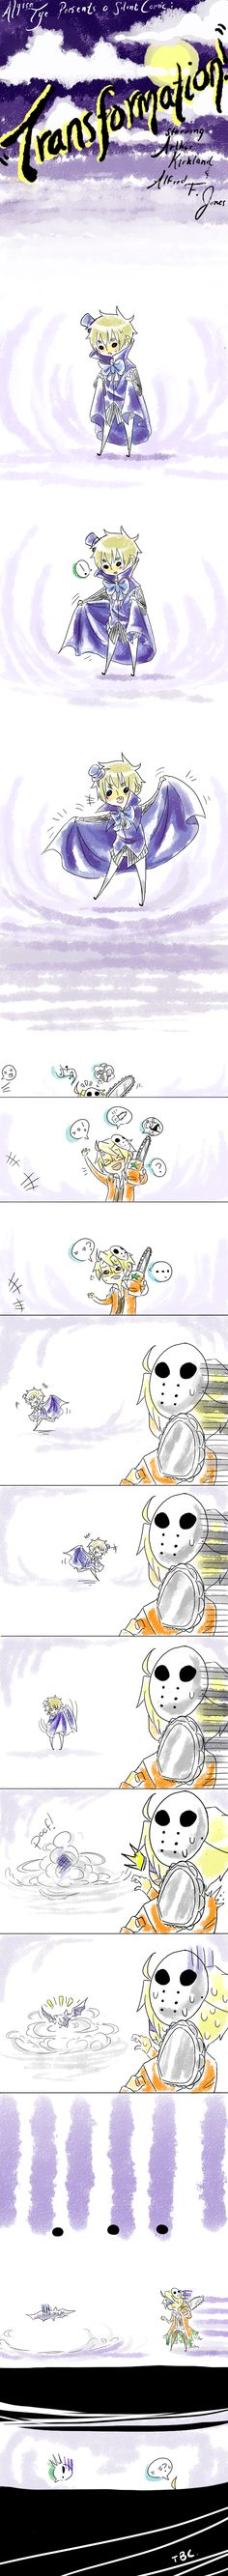 Cute USUK comic! Halloween themed.....a little early but oh well.